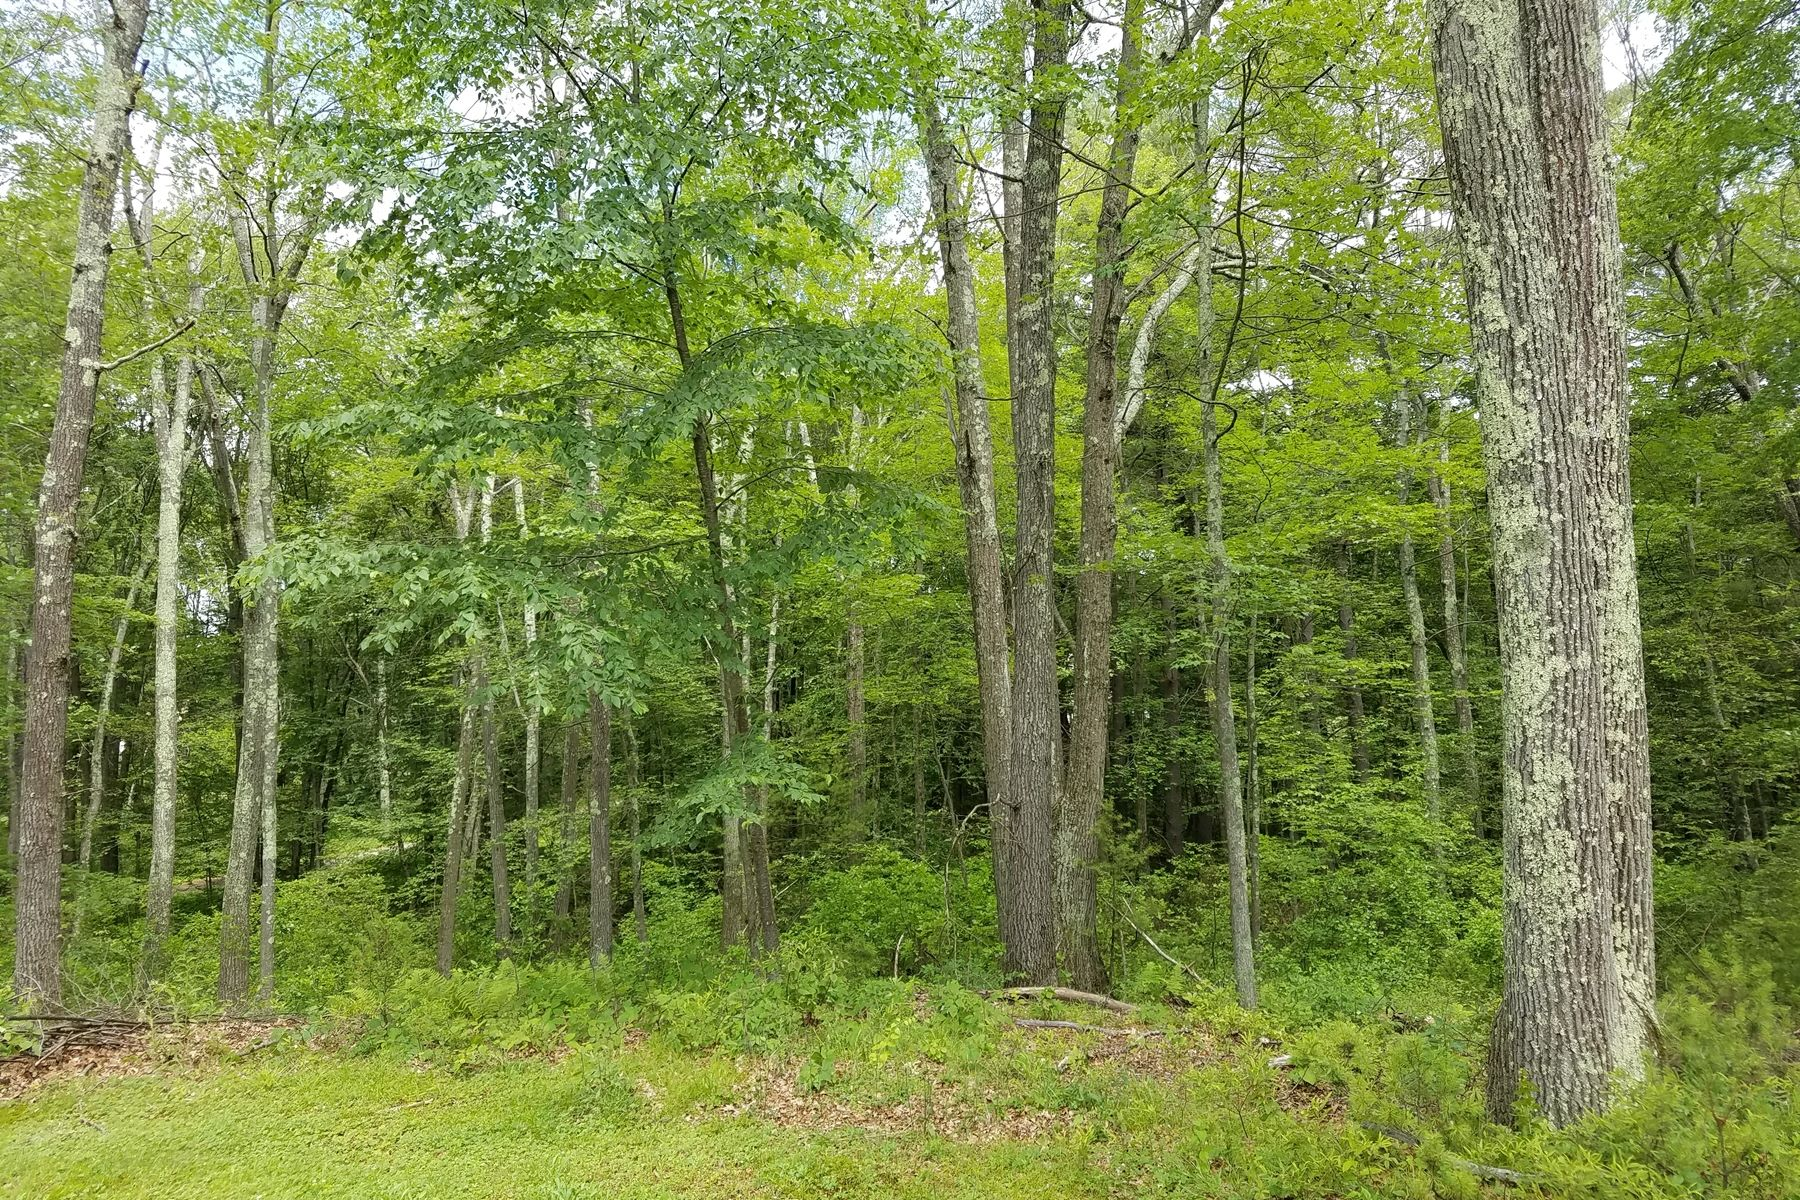 Land for Sale at Beautiful Wooded Lot 0-1 Yew Street Douglas, Massachusetts 01516 United States